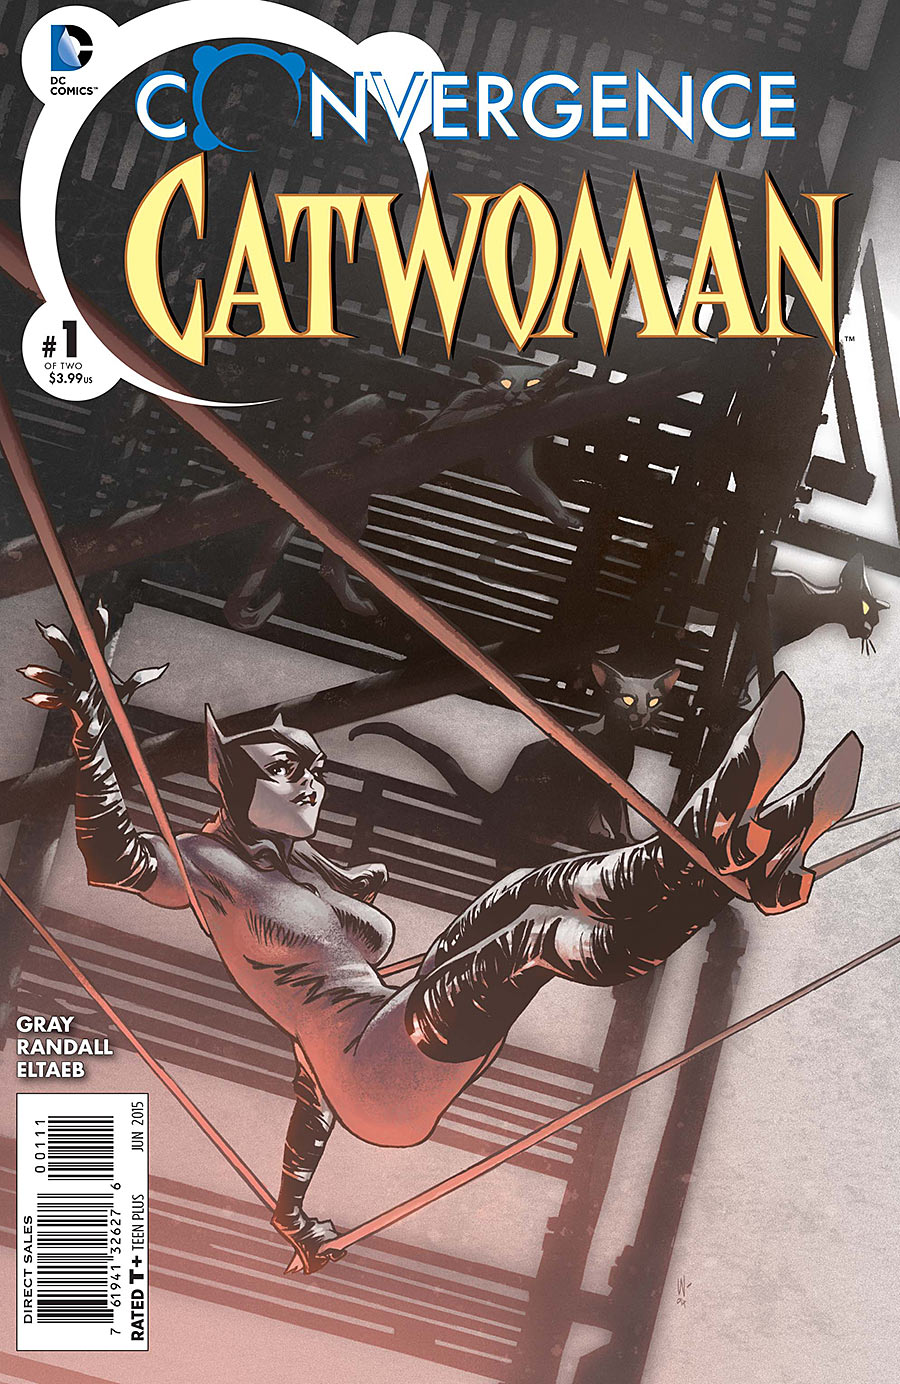 Convergence: Catwoman Vol 1